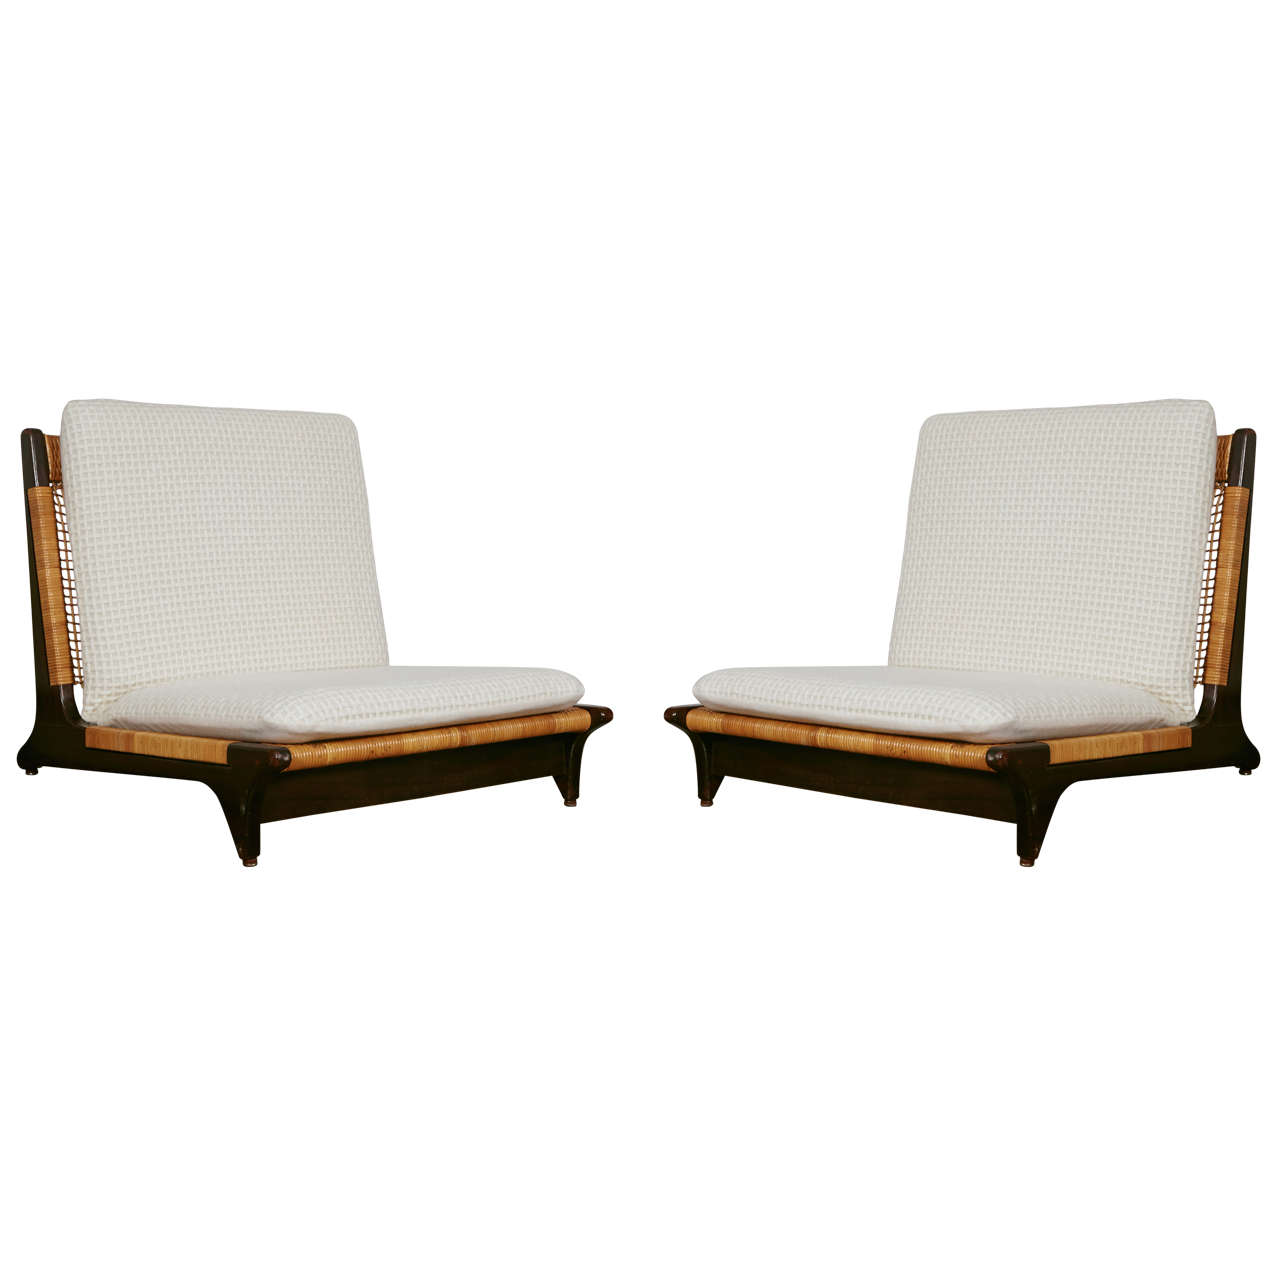 Pair of Hans Olsen Low Chairs For Sale  sc 1 st  1stDibs & Pair of Hans Olsen Low Chairs at 1stdibs